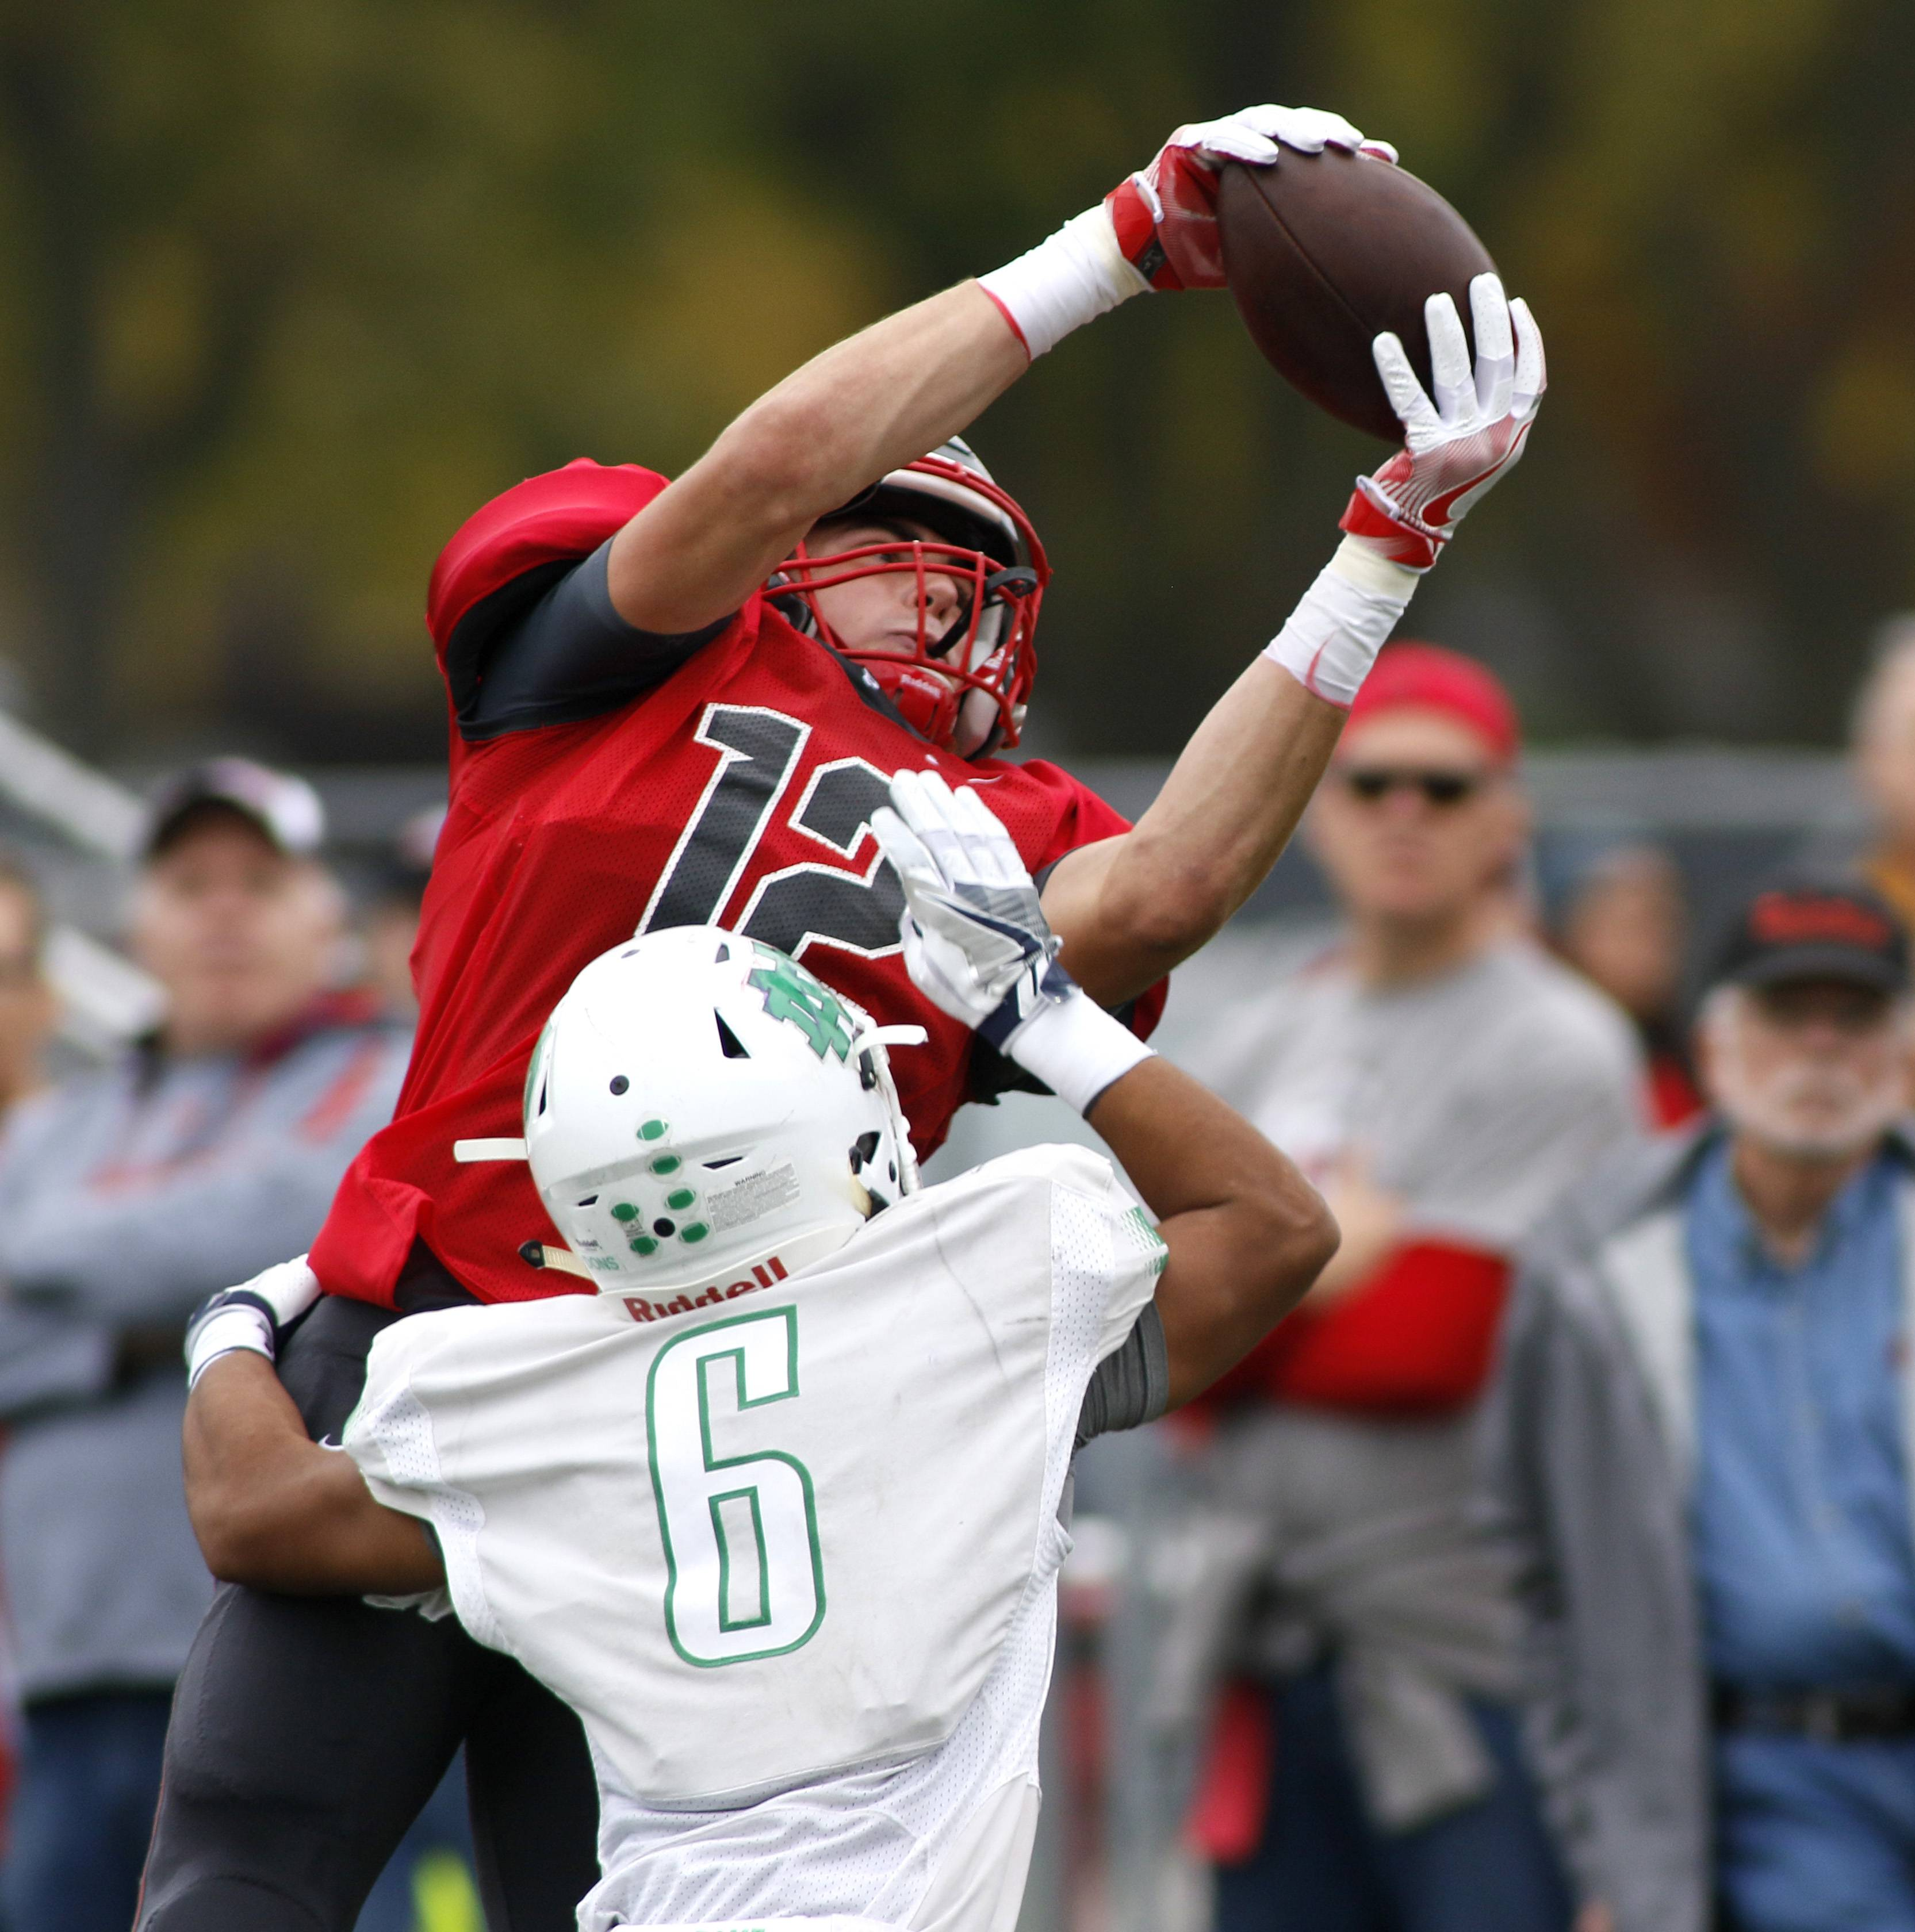 Palatine's Jack Grochowski leaps for a pass in the end zone which was ruled incomplete during the Pirates' first-round playoff victory against Notre Dame. The Pirates are back in action Saturday evening at Lyons Township.